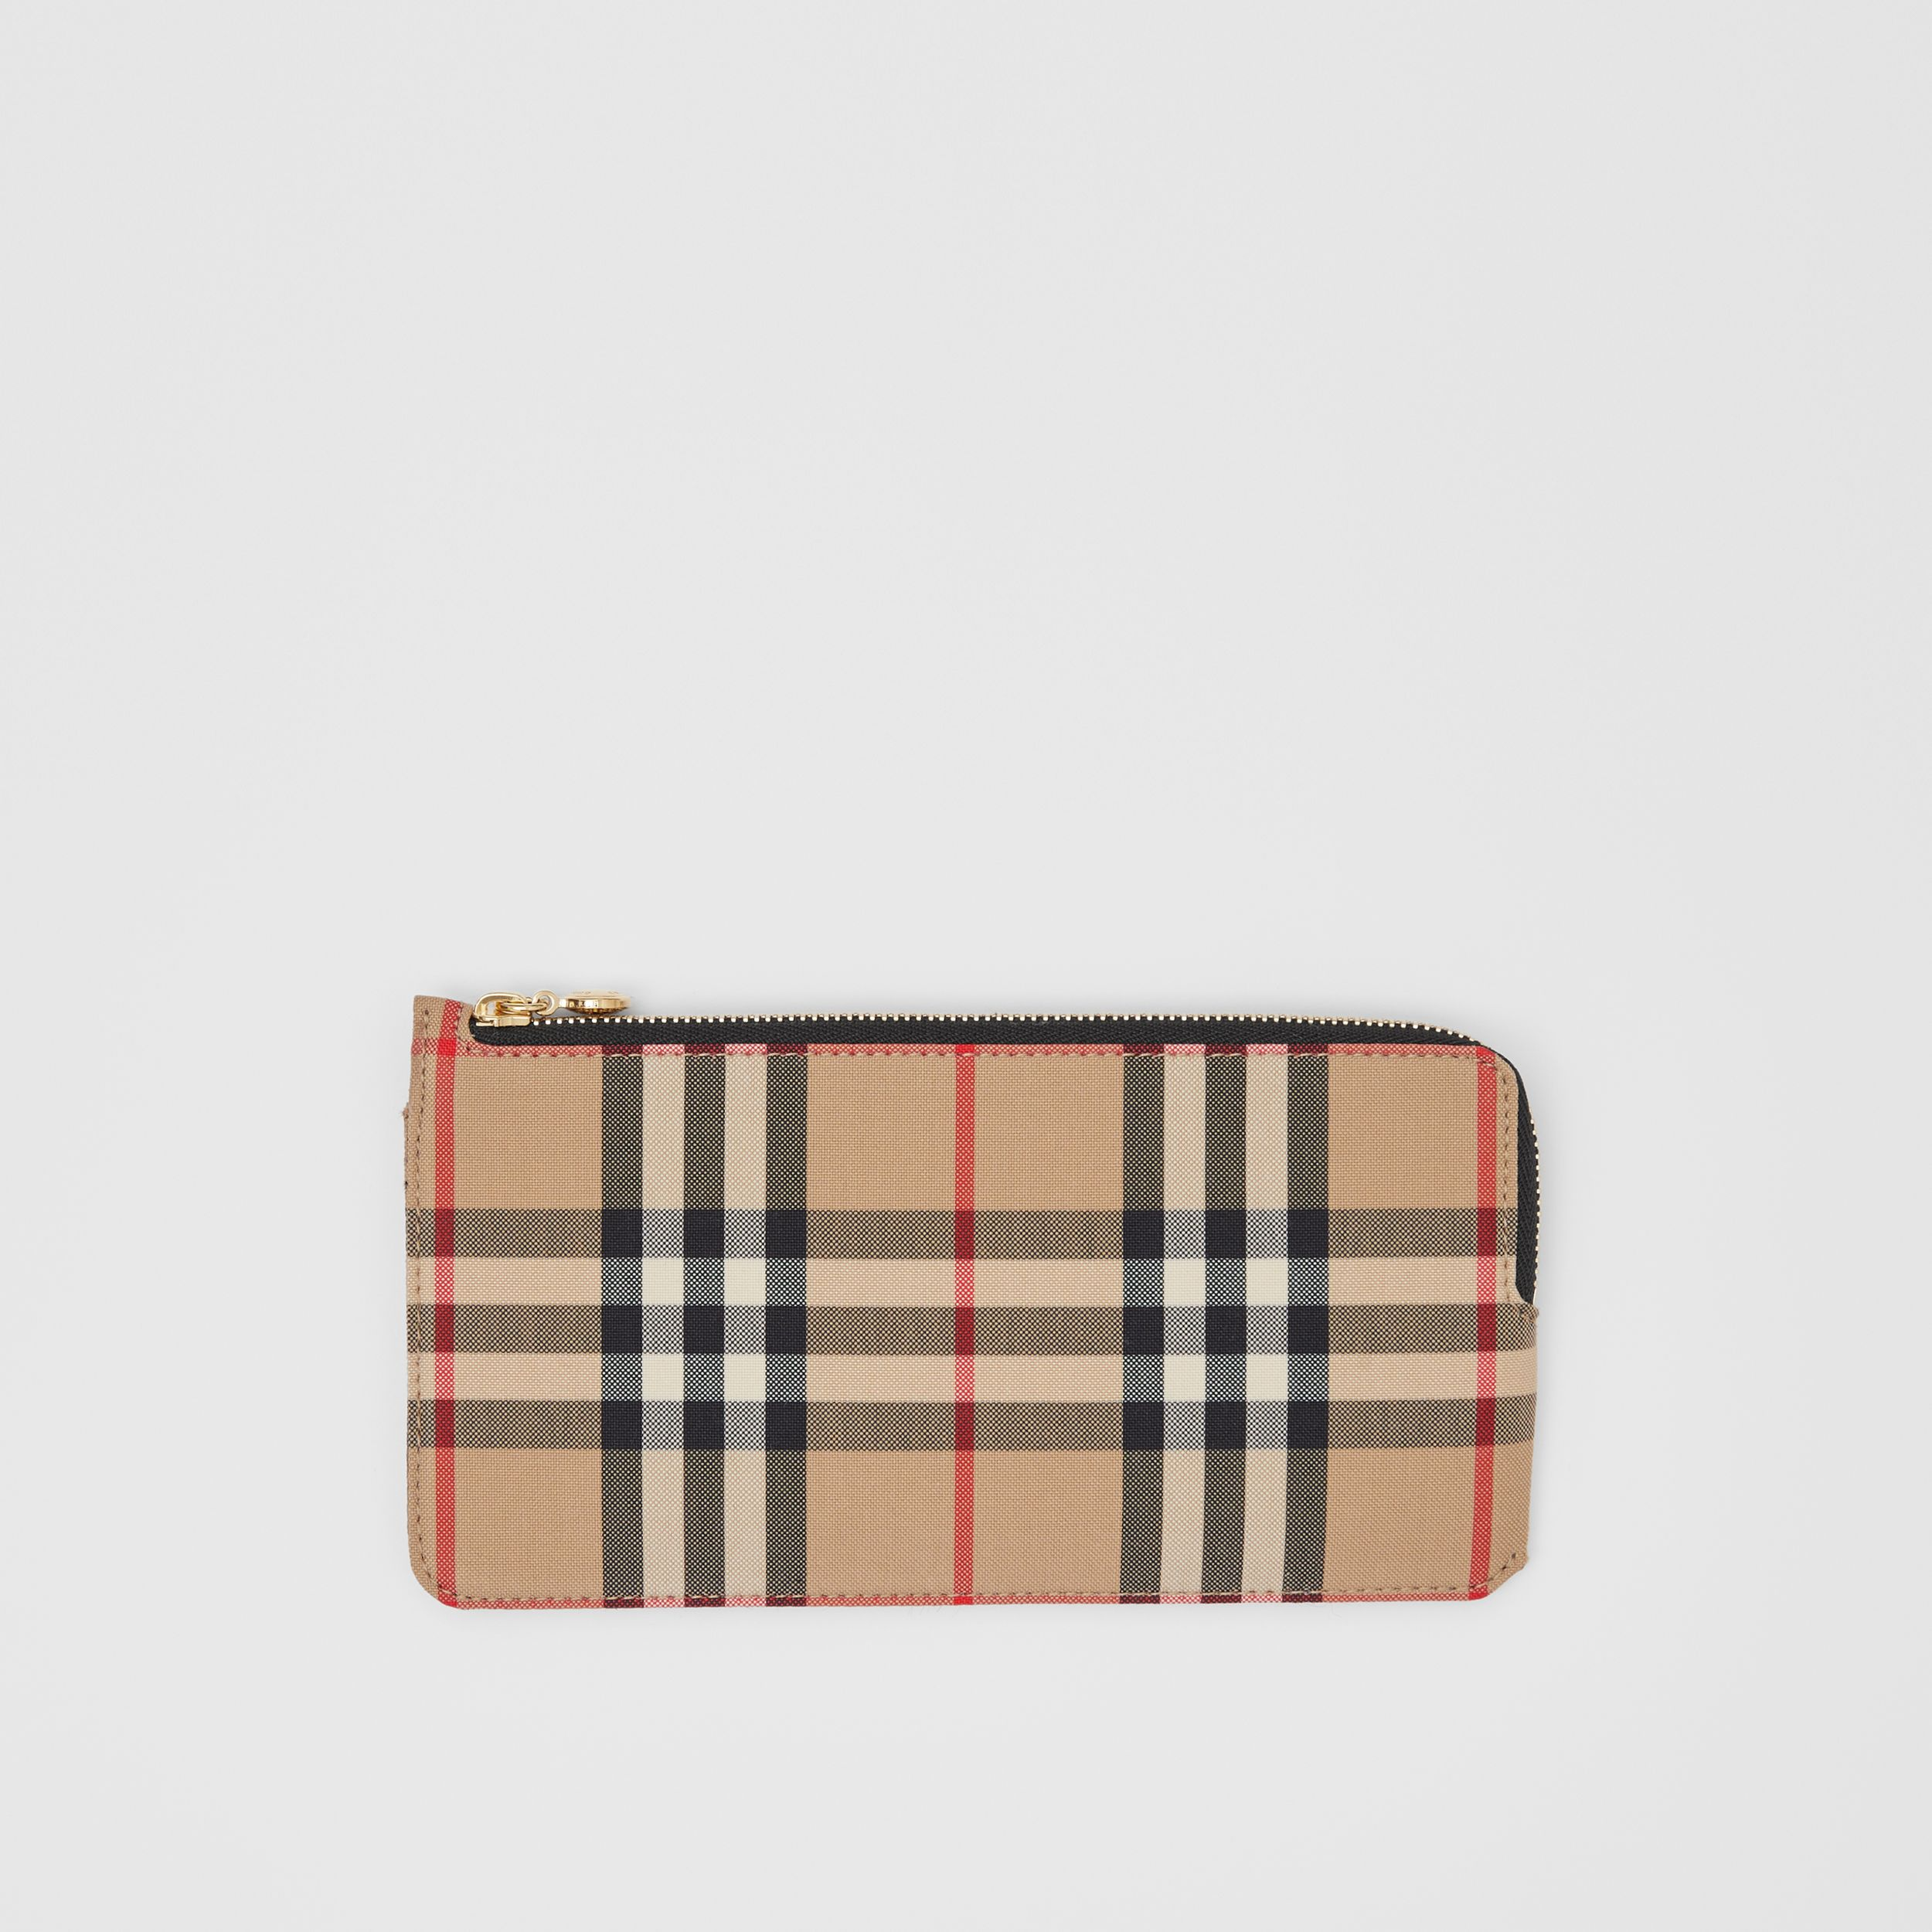 Vintage Check and Leather Phone Wallet in Black - Women | Burberry - 1